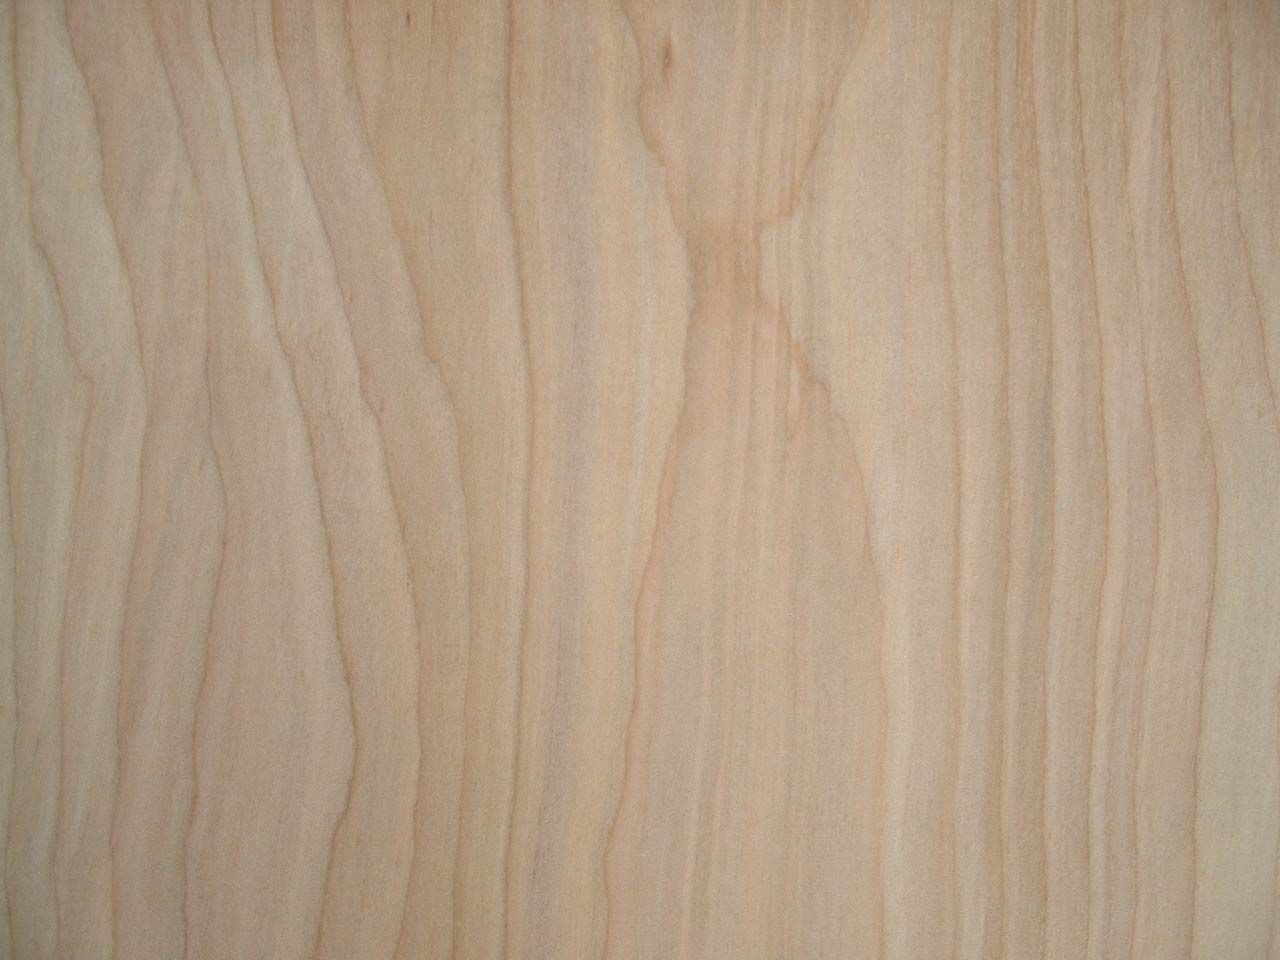 White wood texture related keywords amp suggestions white wood texture - Modern Birch Wood Grain Texture With Hardwoods Jpg